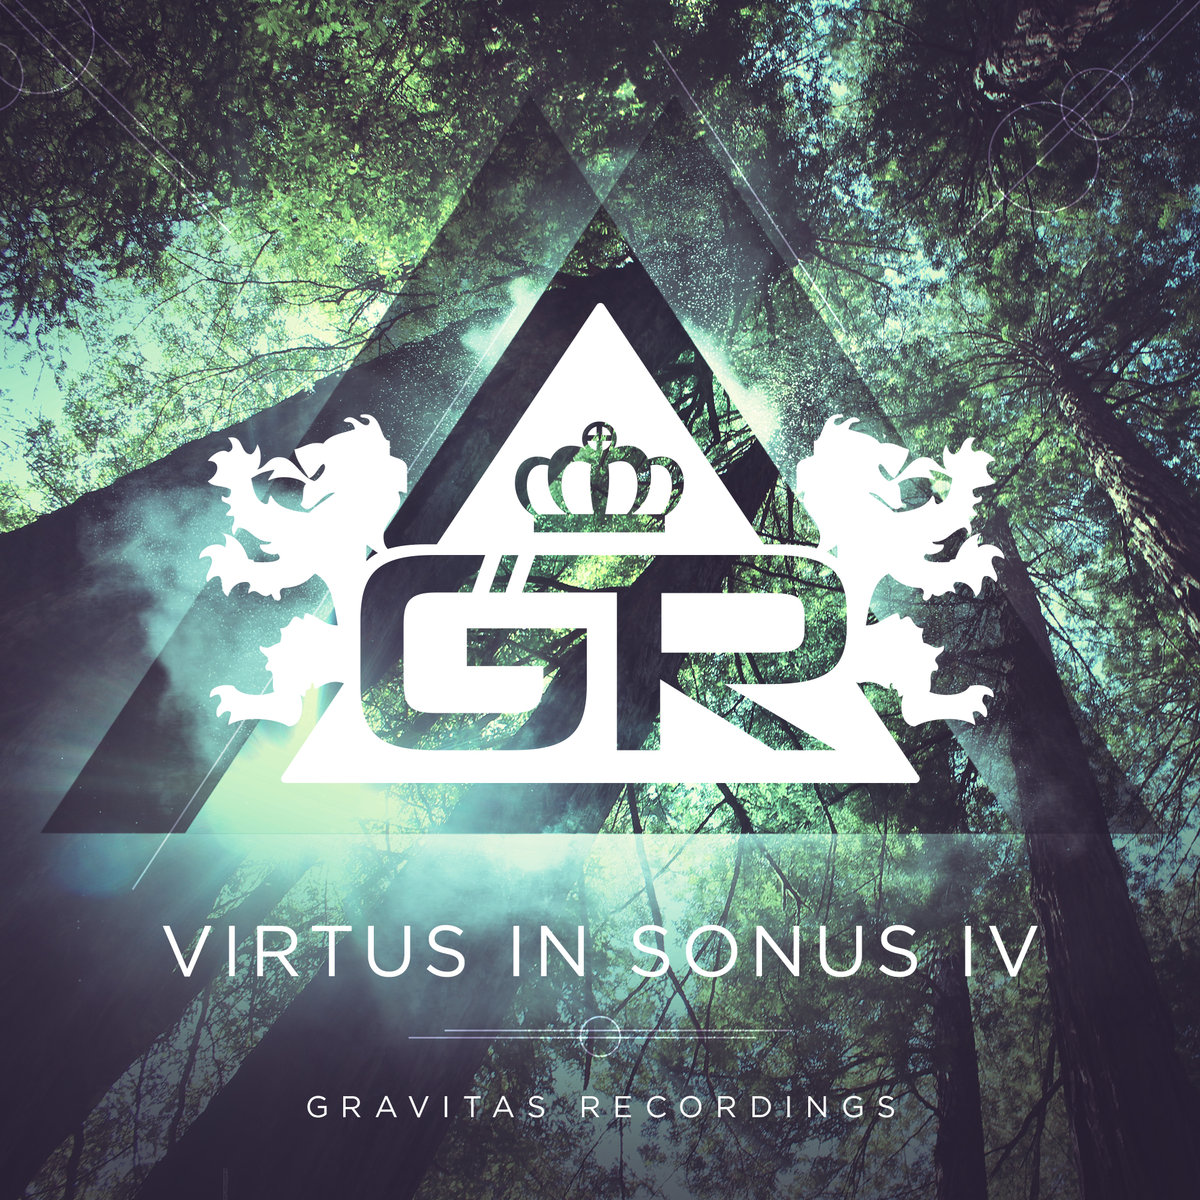 Unlimited Gravity - Mind Misplacement @ 'Virtus In Sonus IV' album (Austin)